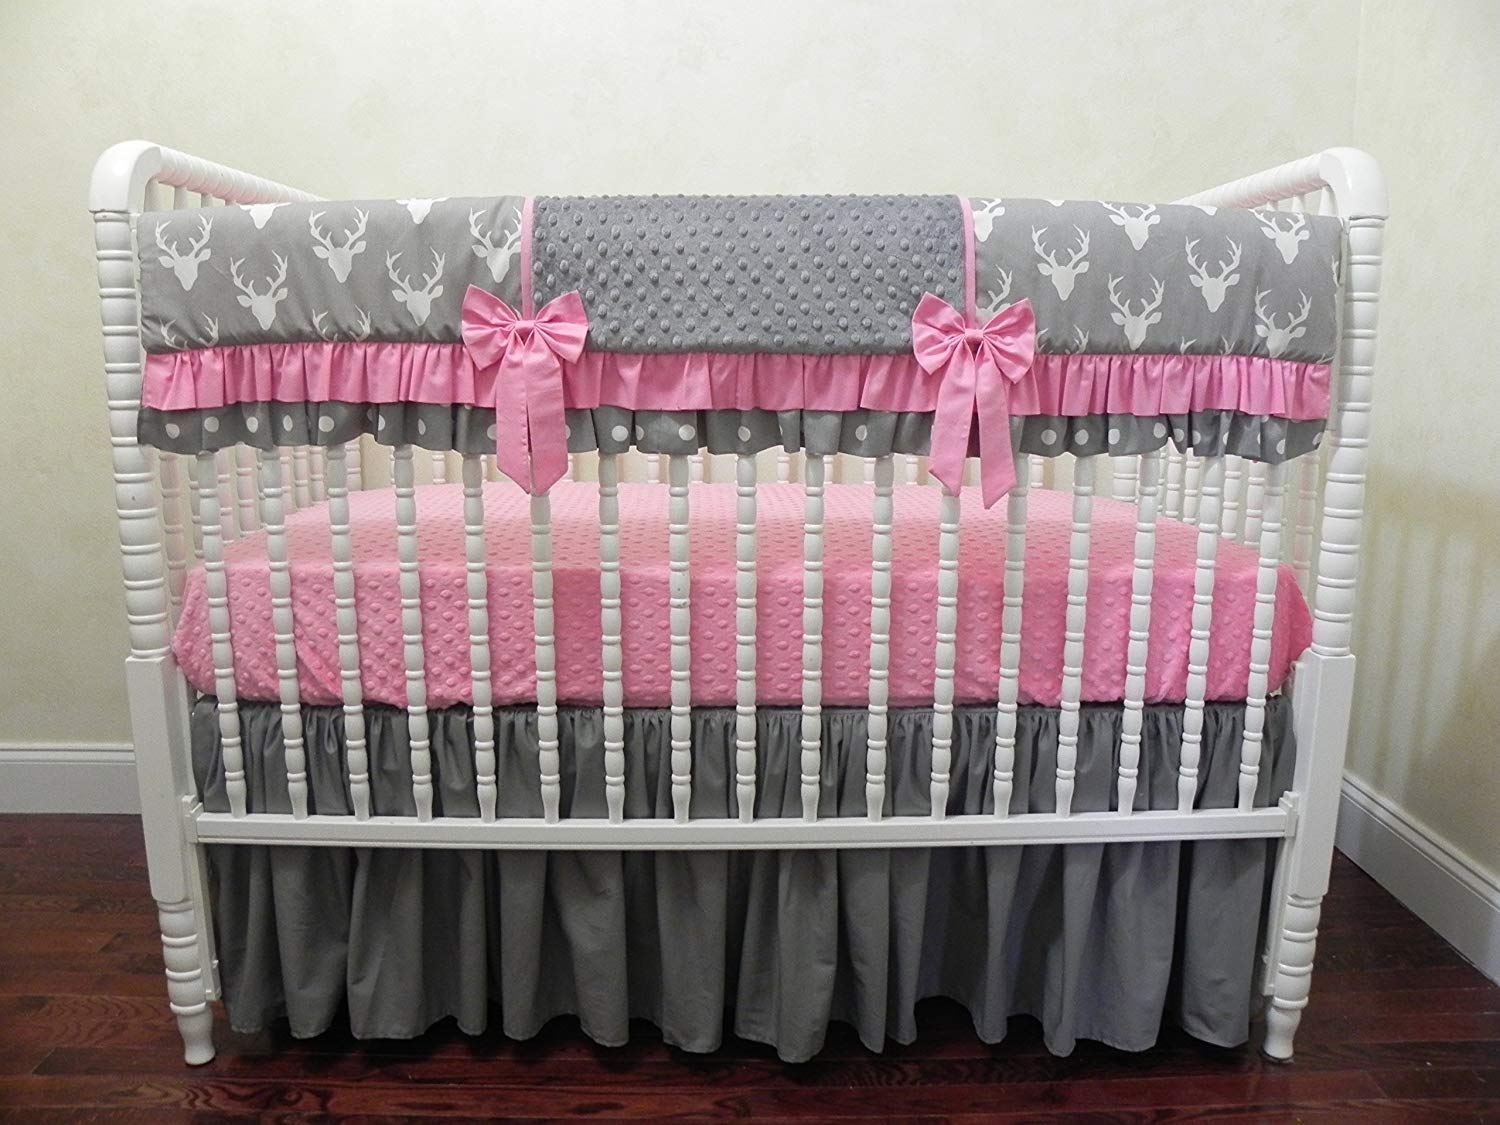 7b52baf03 Get Quotations · Nursery Bedding, Girl Crib Bedding Set Rhona, Bumperless Crib  Bedding, Crib Rail Cover